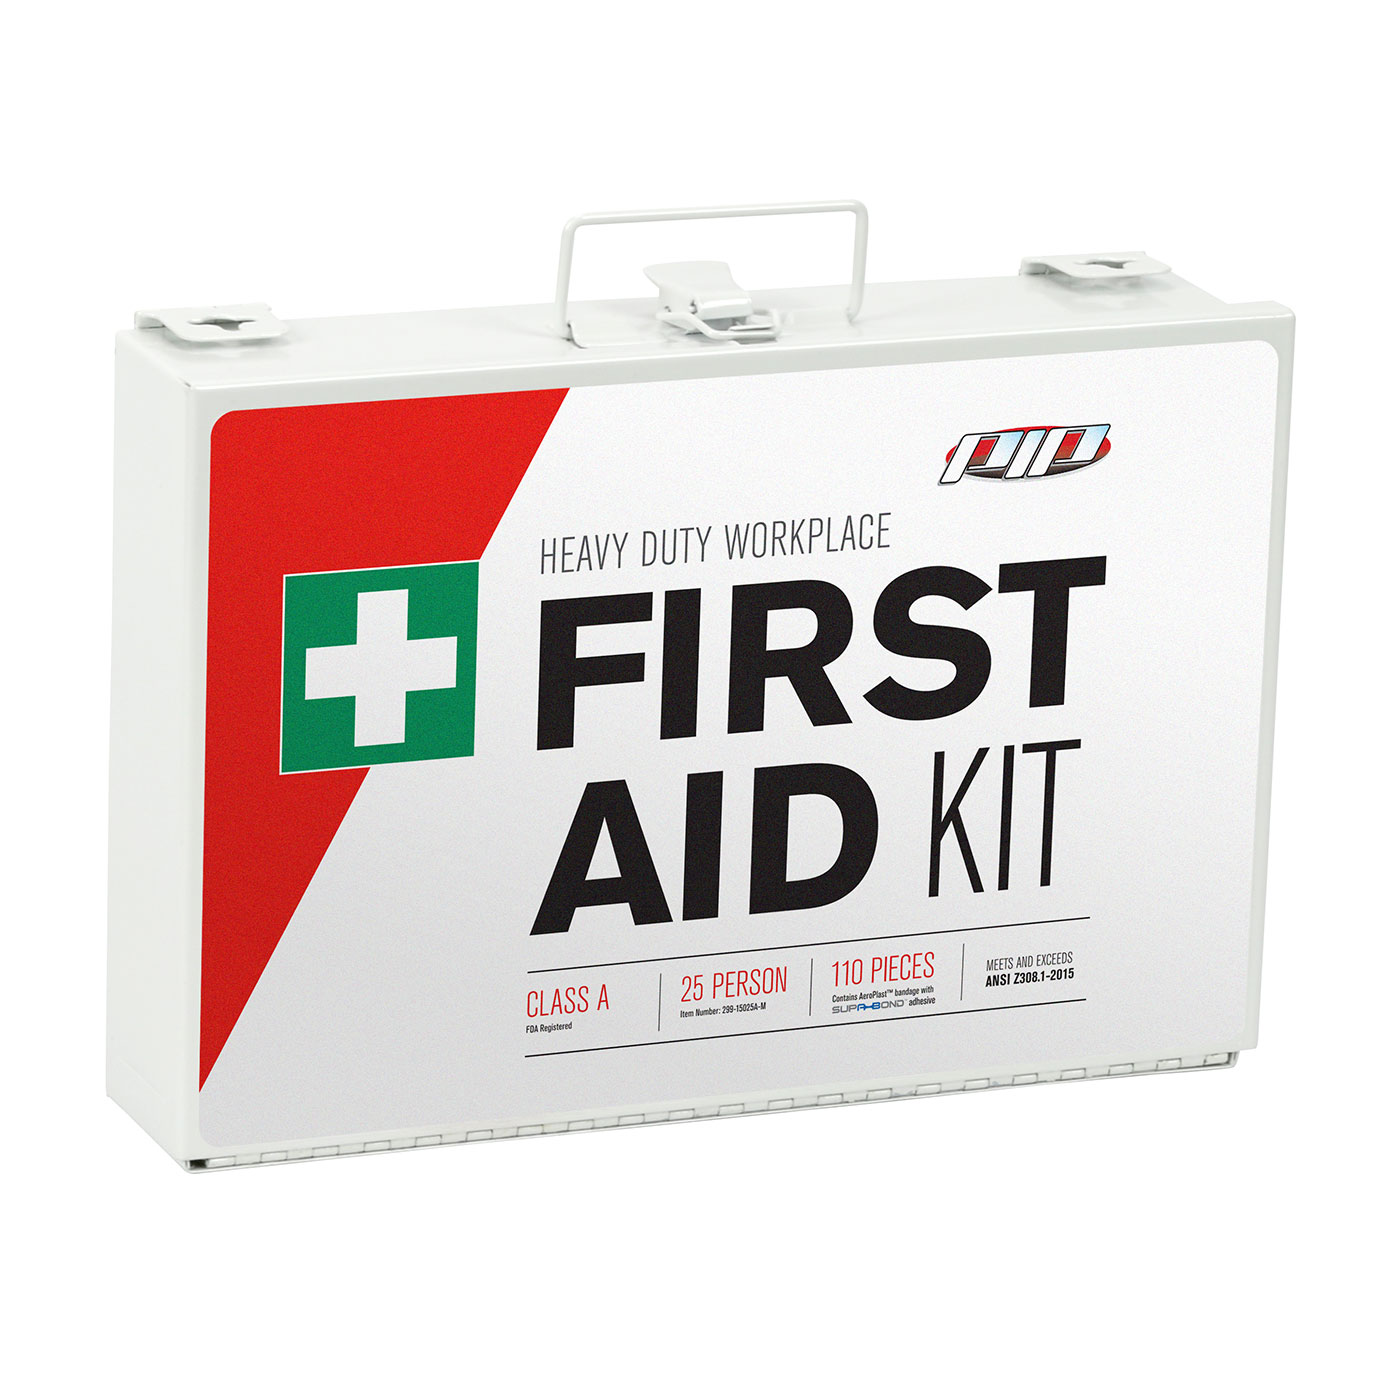 ANSI Class A Metal First Aid Kit - 25 Person, White, KIT